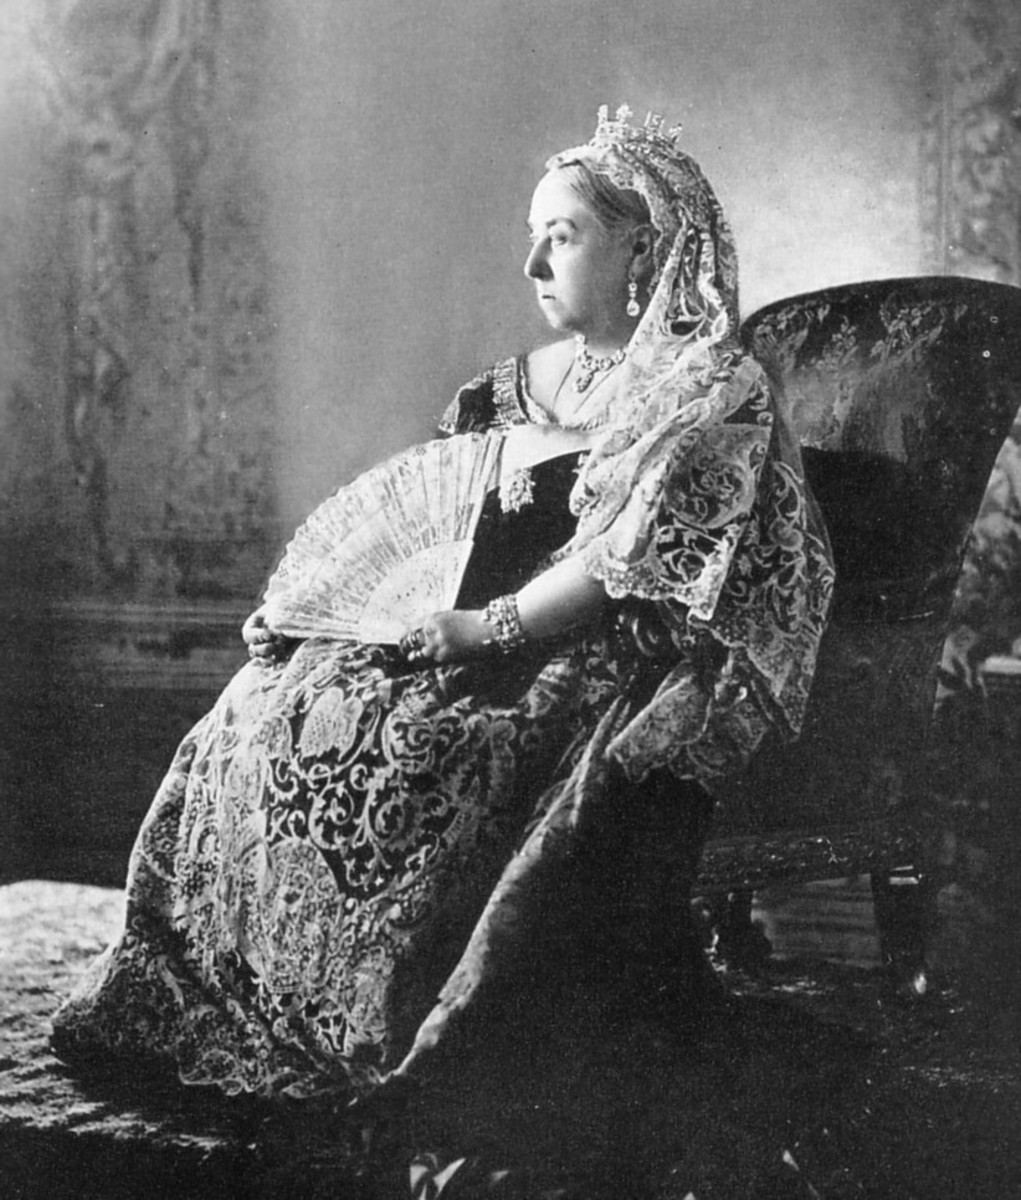 Queen Victoria celebrated her Diamond Jubilee but people were different back then